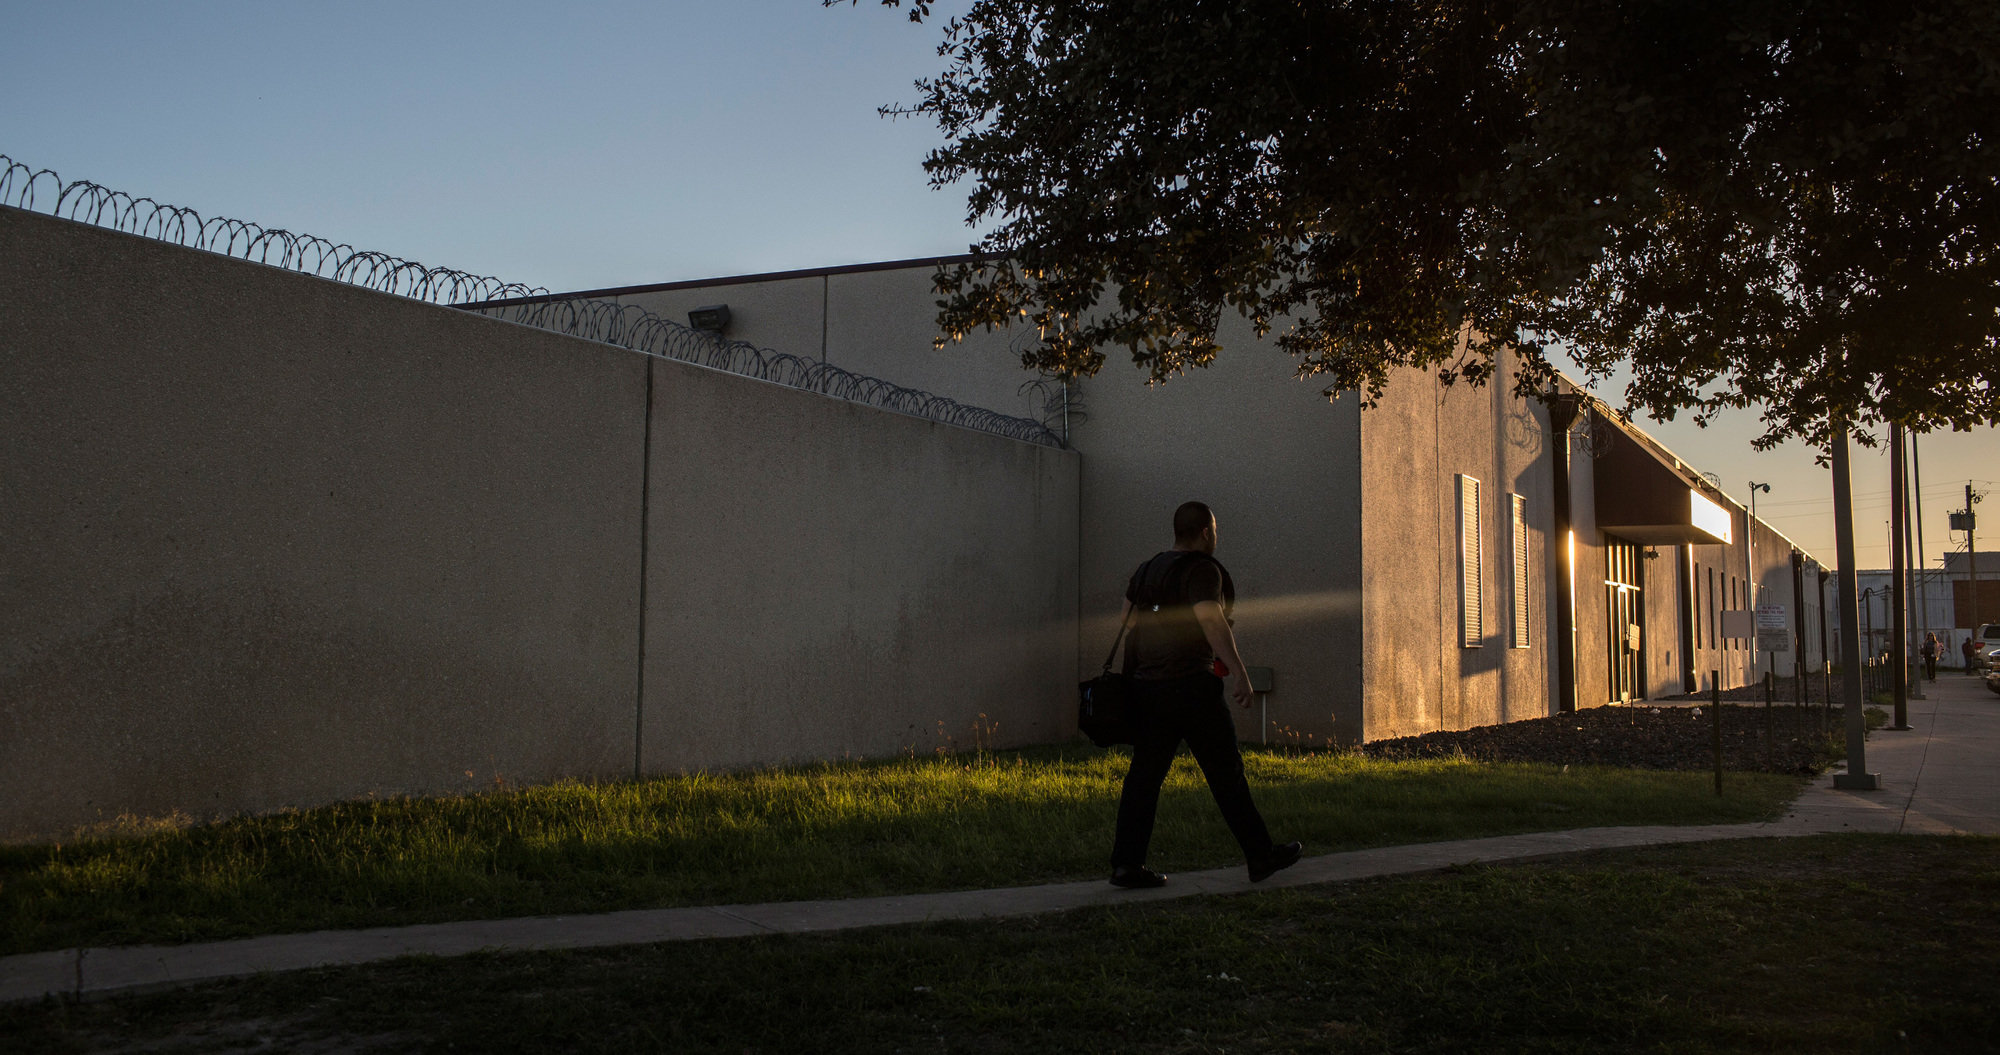 In an immigration detention center on the outskirts of Laredo, judges on temporary assignments were hearing cases in a courtroom hastily arranged inside its walls from March through December of 2017. Photographs are not allowed inside the building. The detention center is overseen by Immigration and Customs Enforcement and run by a private company, CoreCivic.